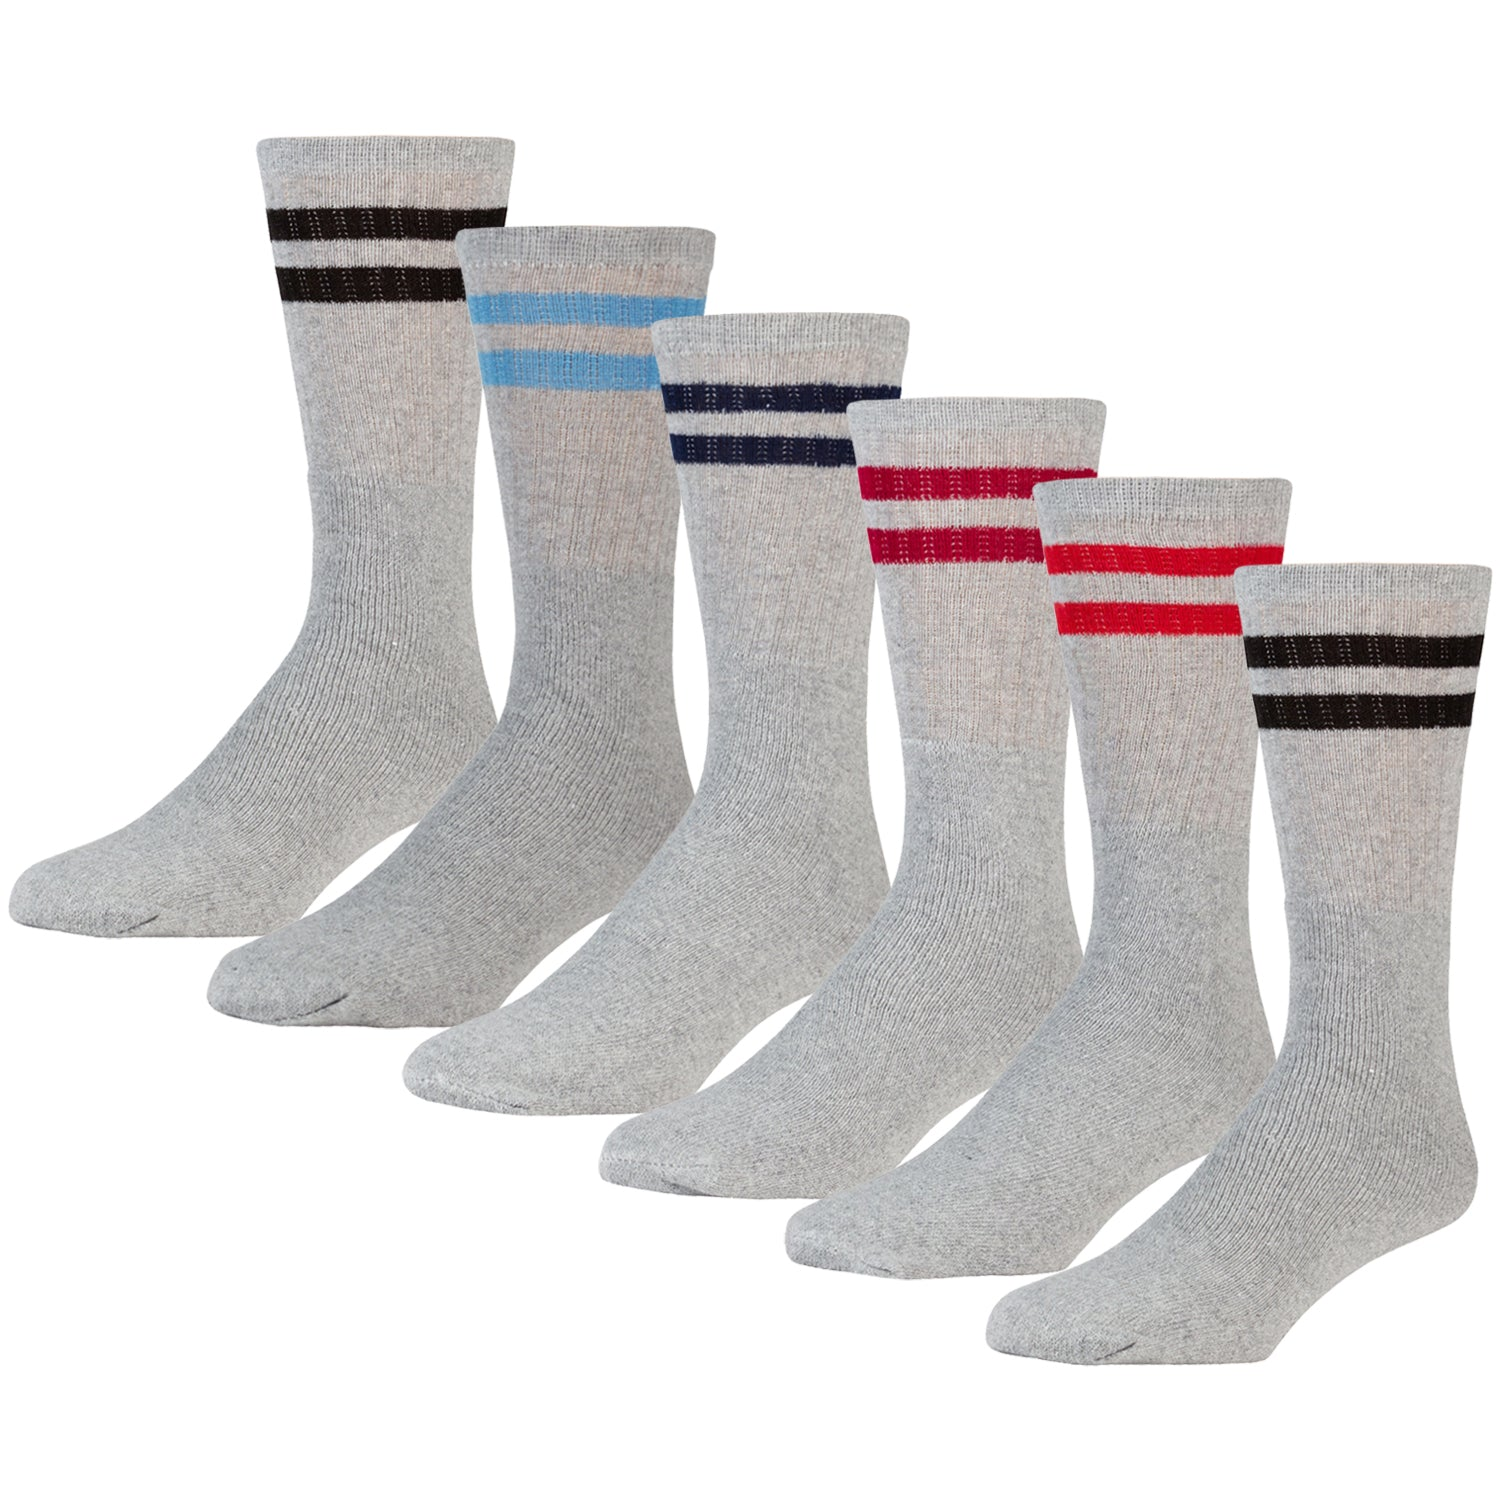 Men's & Women's Referee Style Cotton Sports Socks